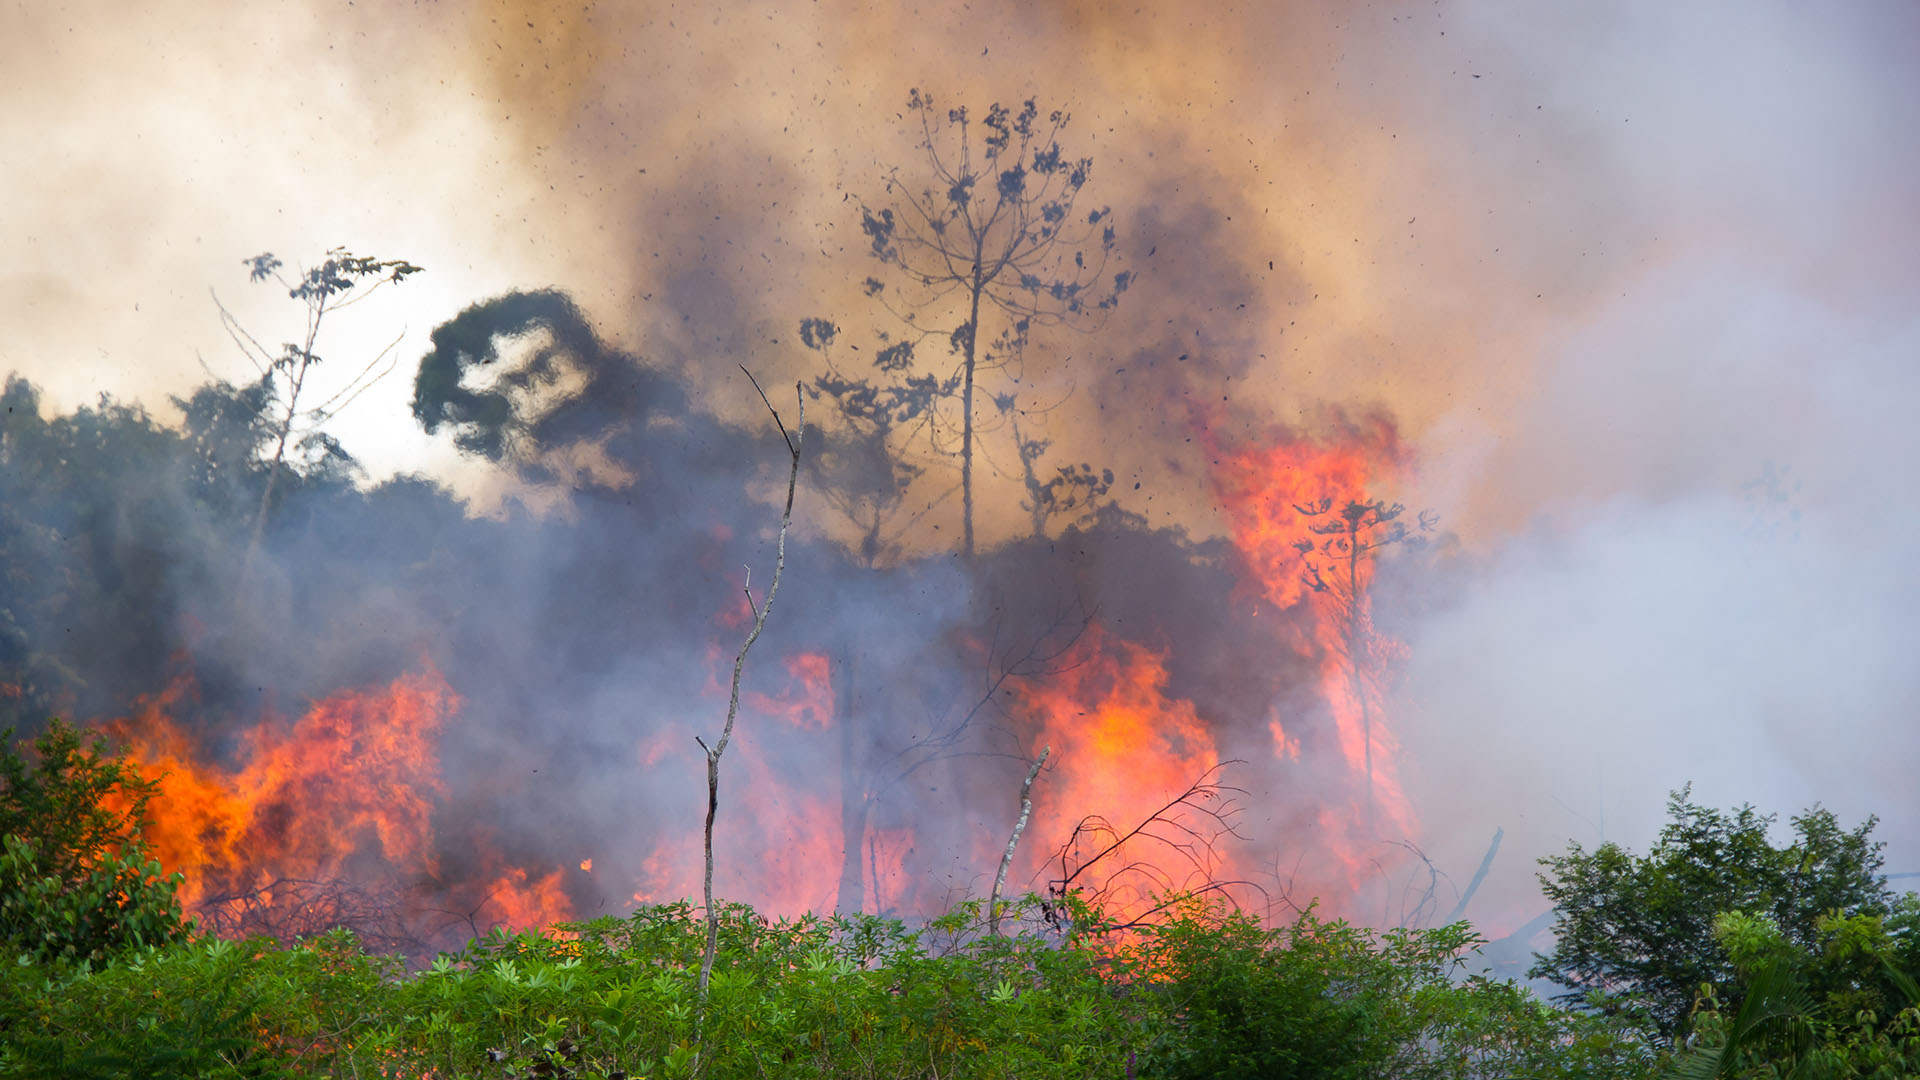 Wildfires Are Ravaging the Amazon—and NASA Can See the Smoke From Space